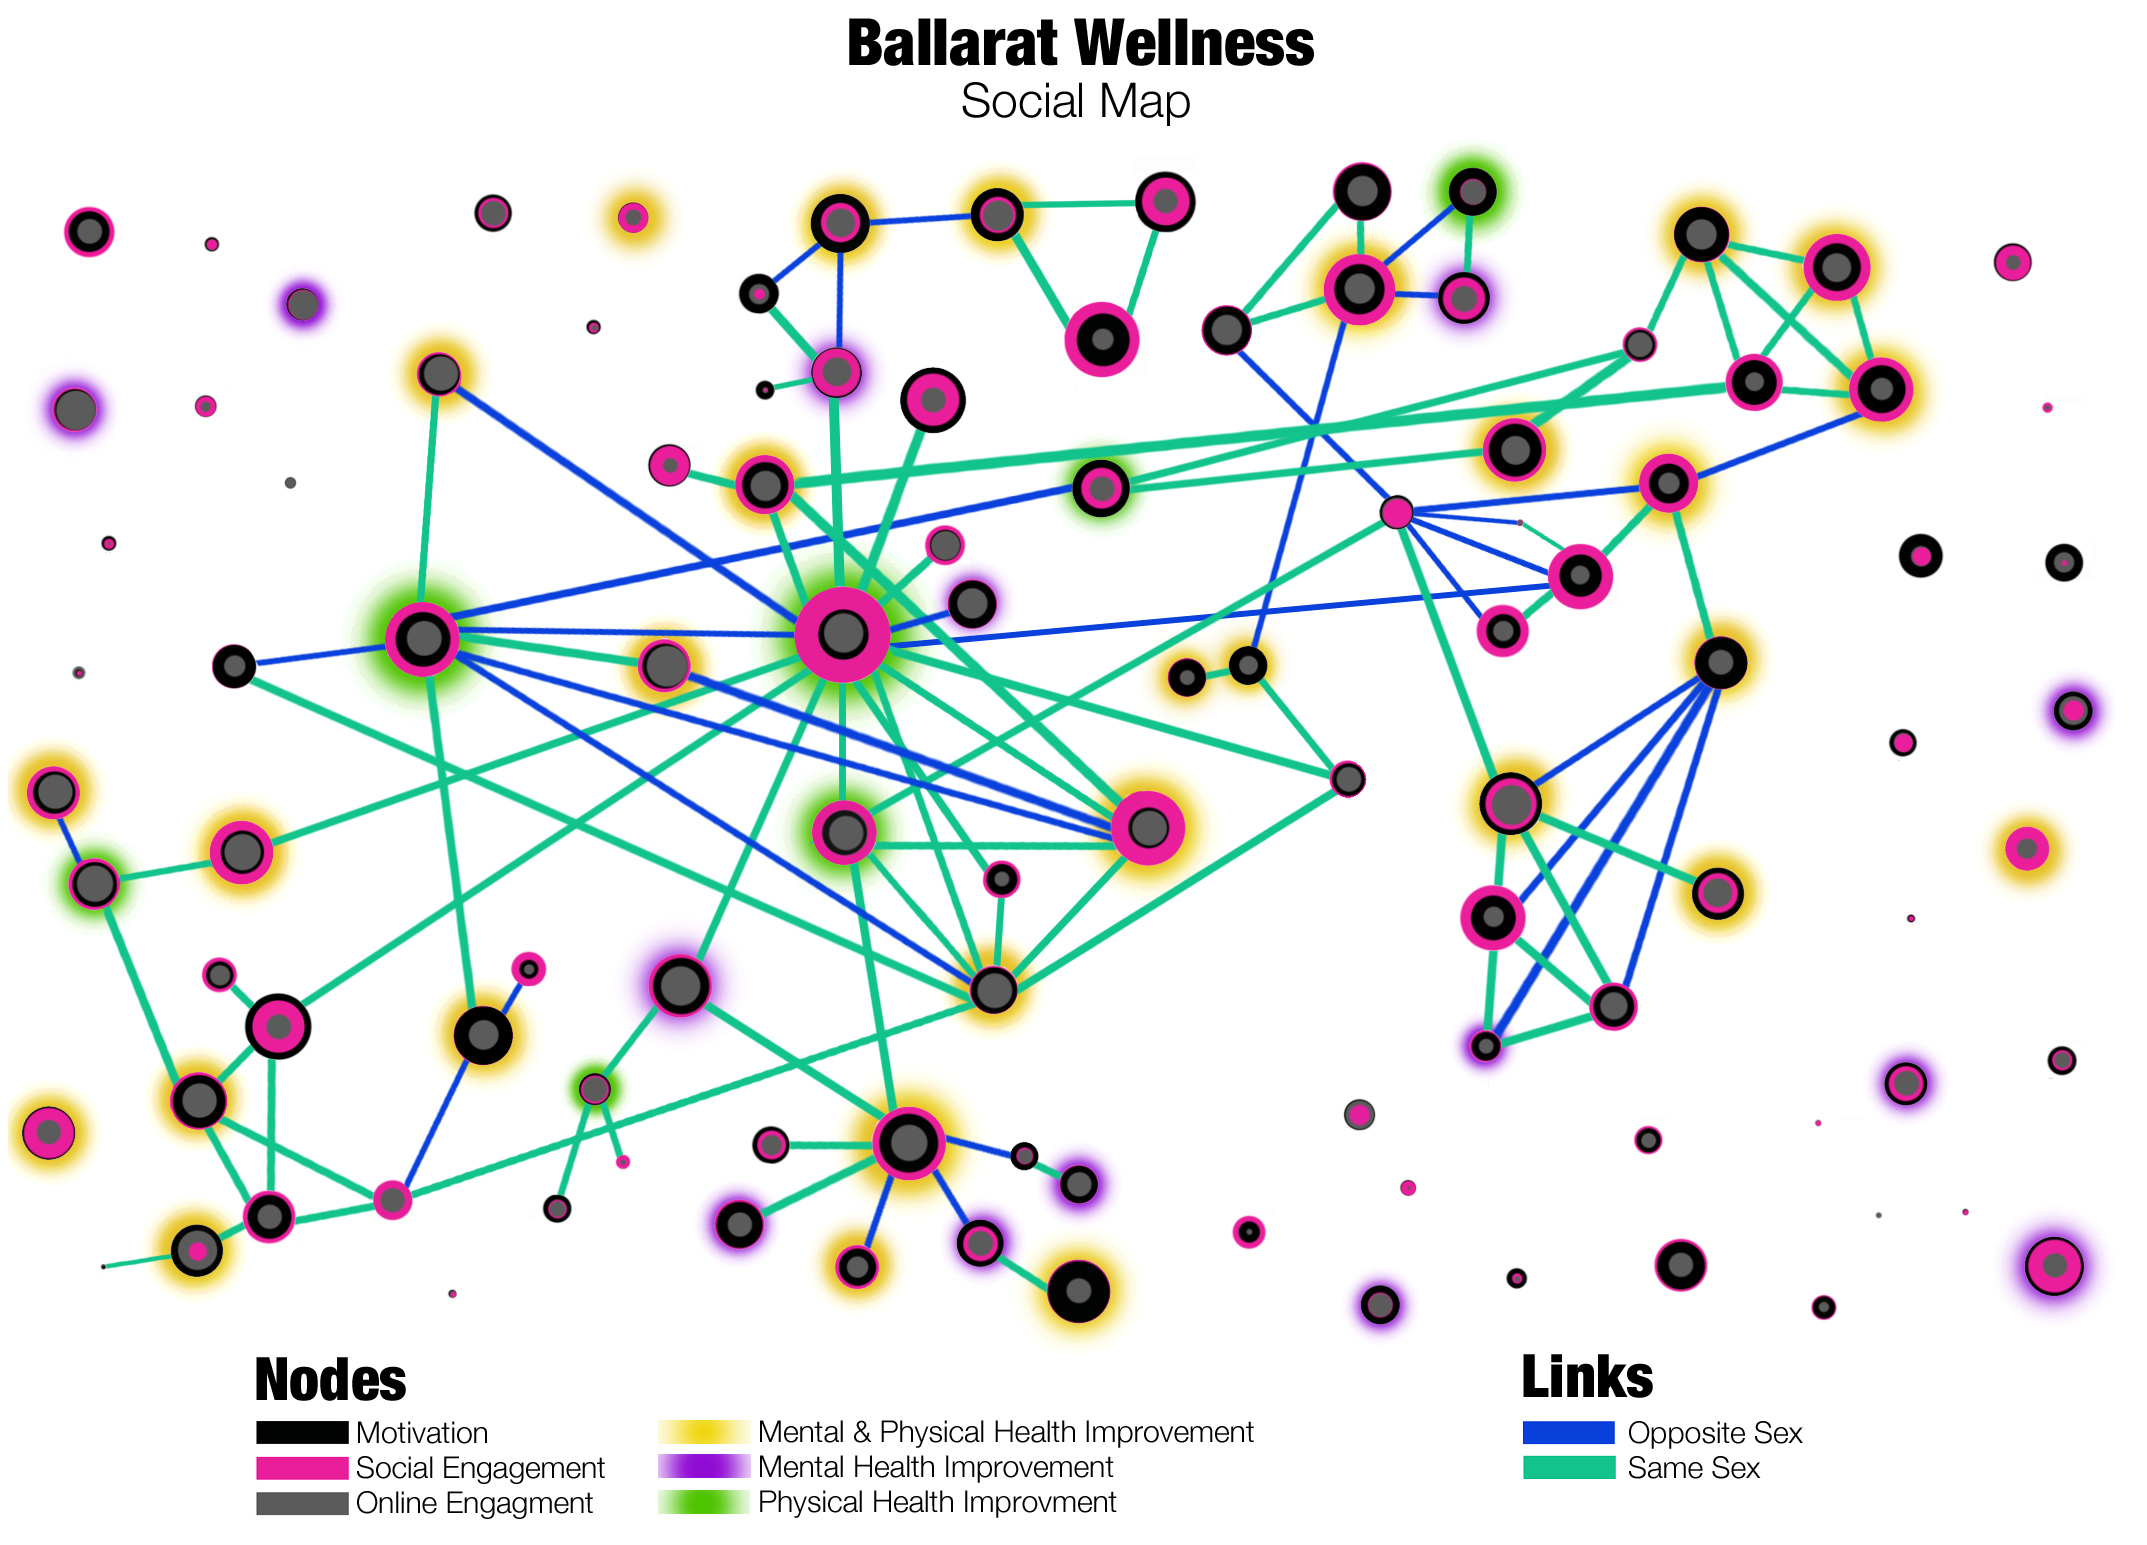 designing the ballarat wellness social map. mapping social networks  welcome to ballaratwellnesscom